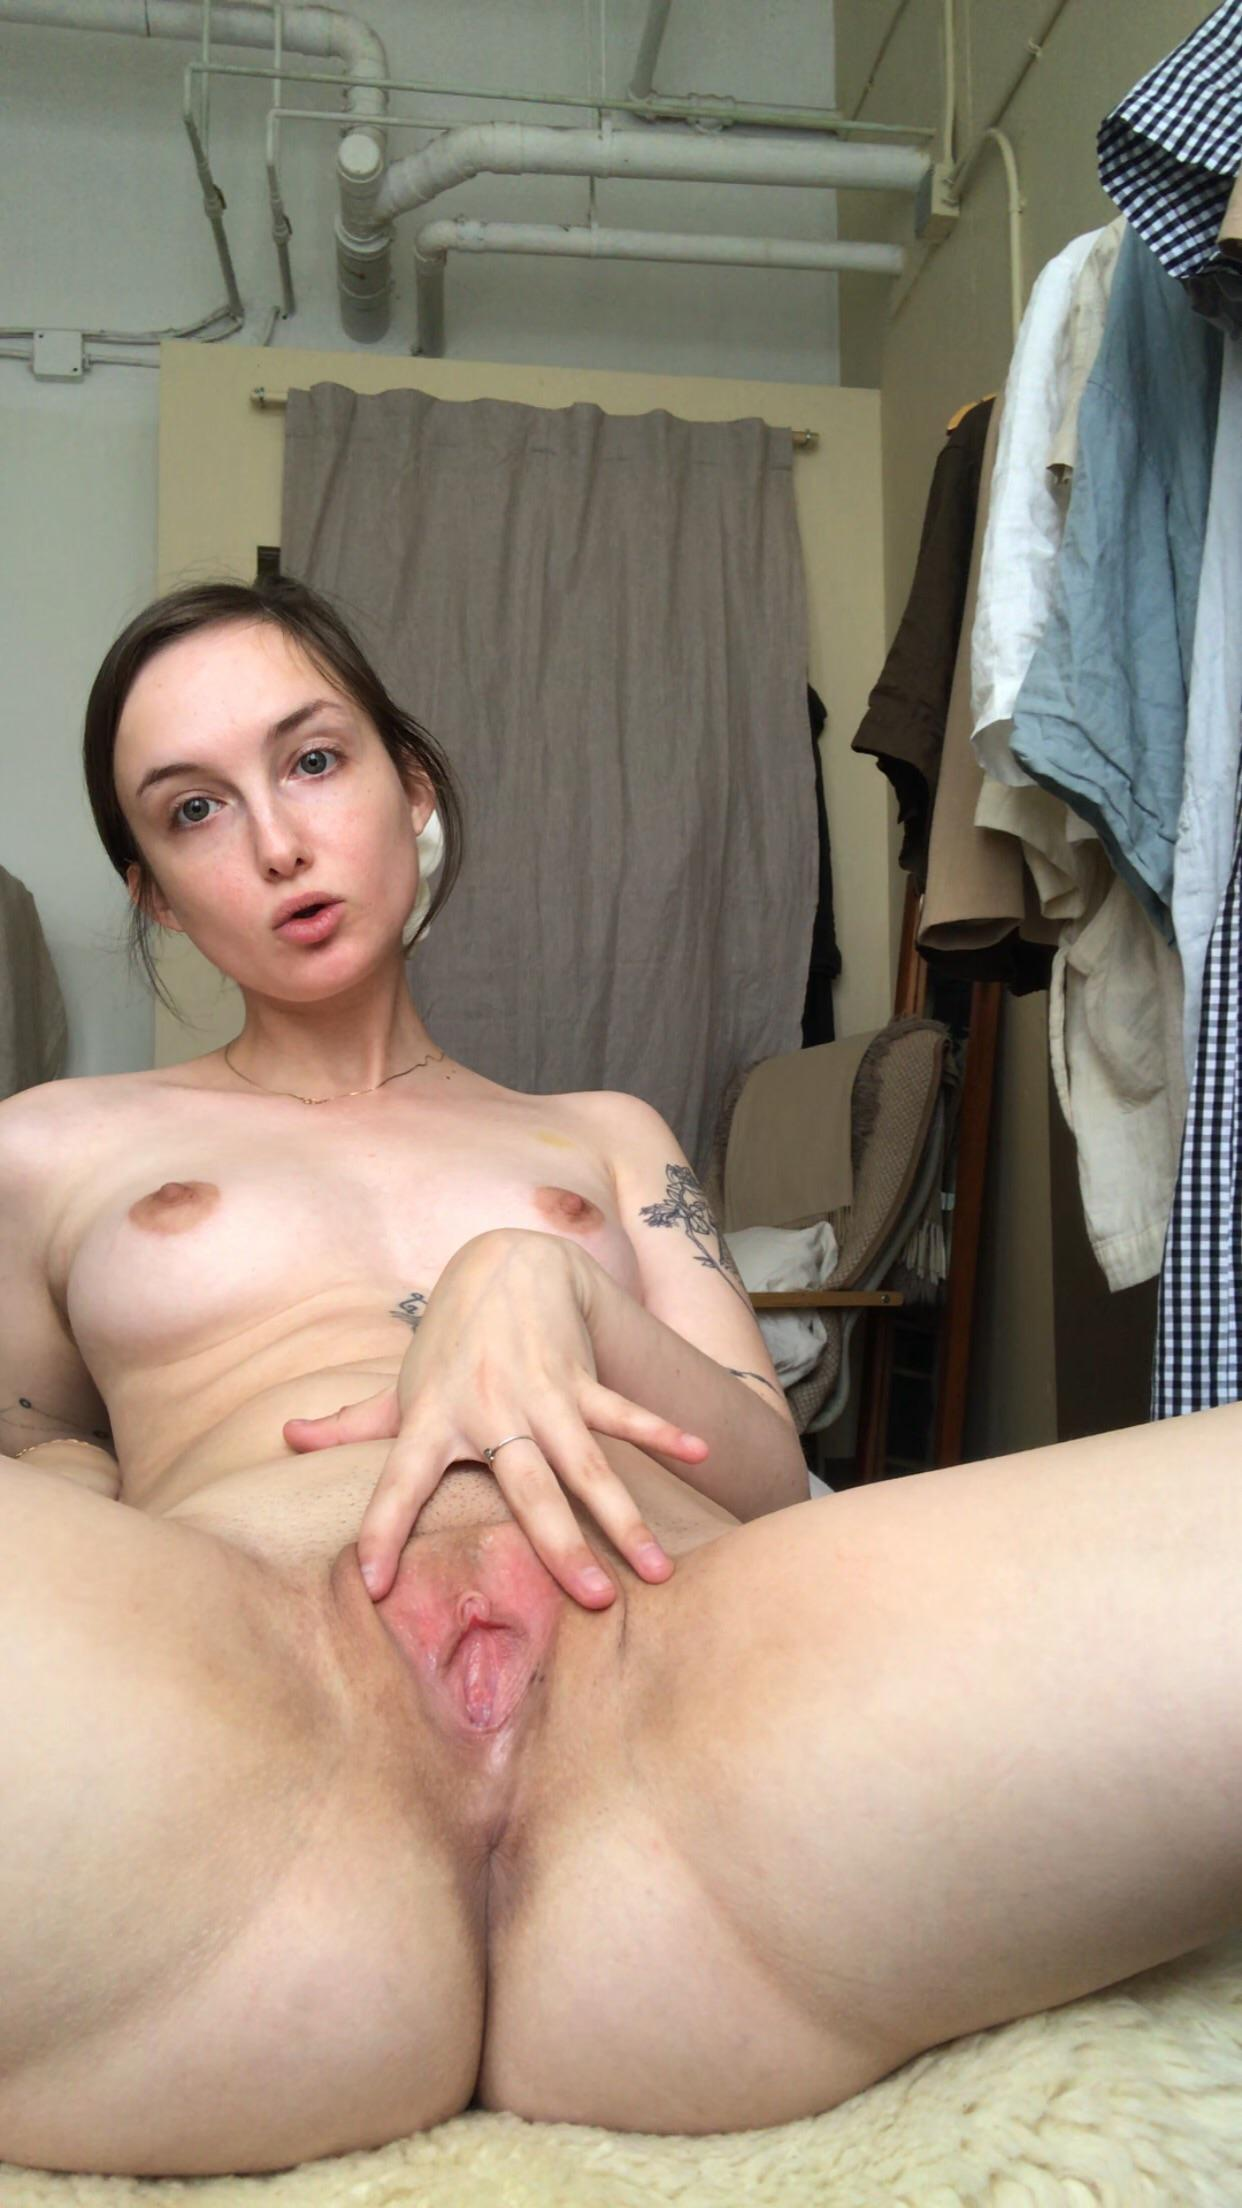 this community is the loveliest. To express my gratitude, I present: spread pussy [f]